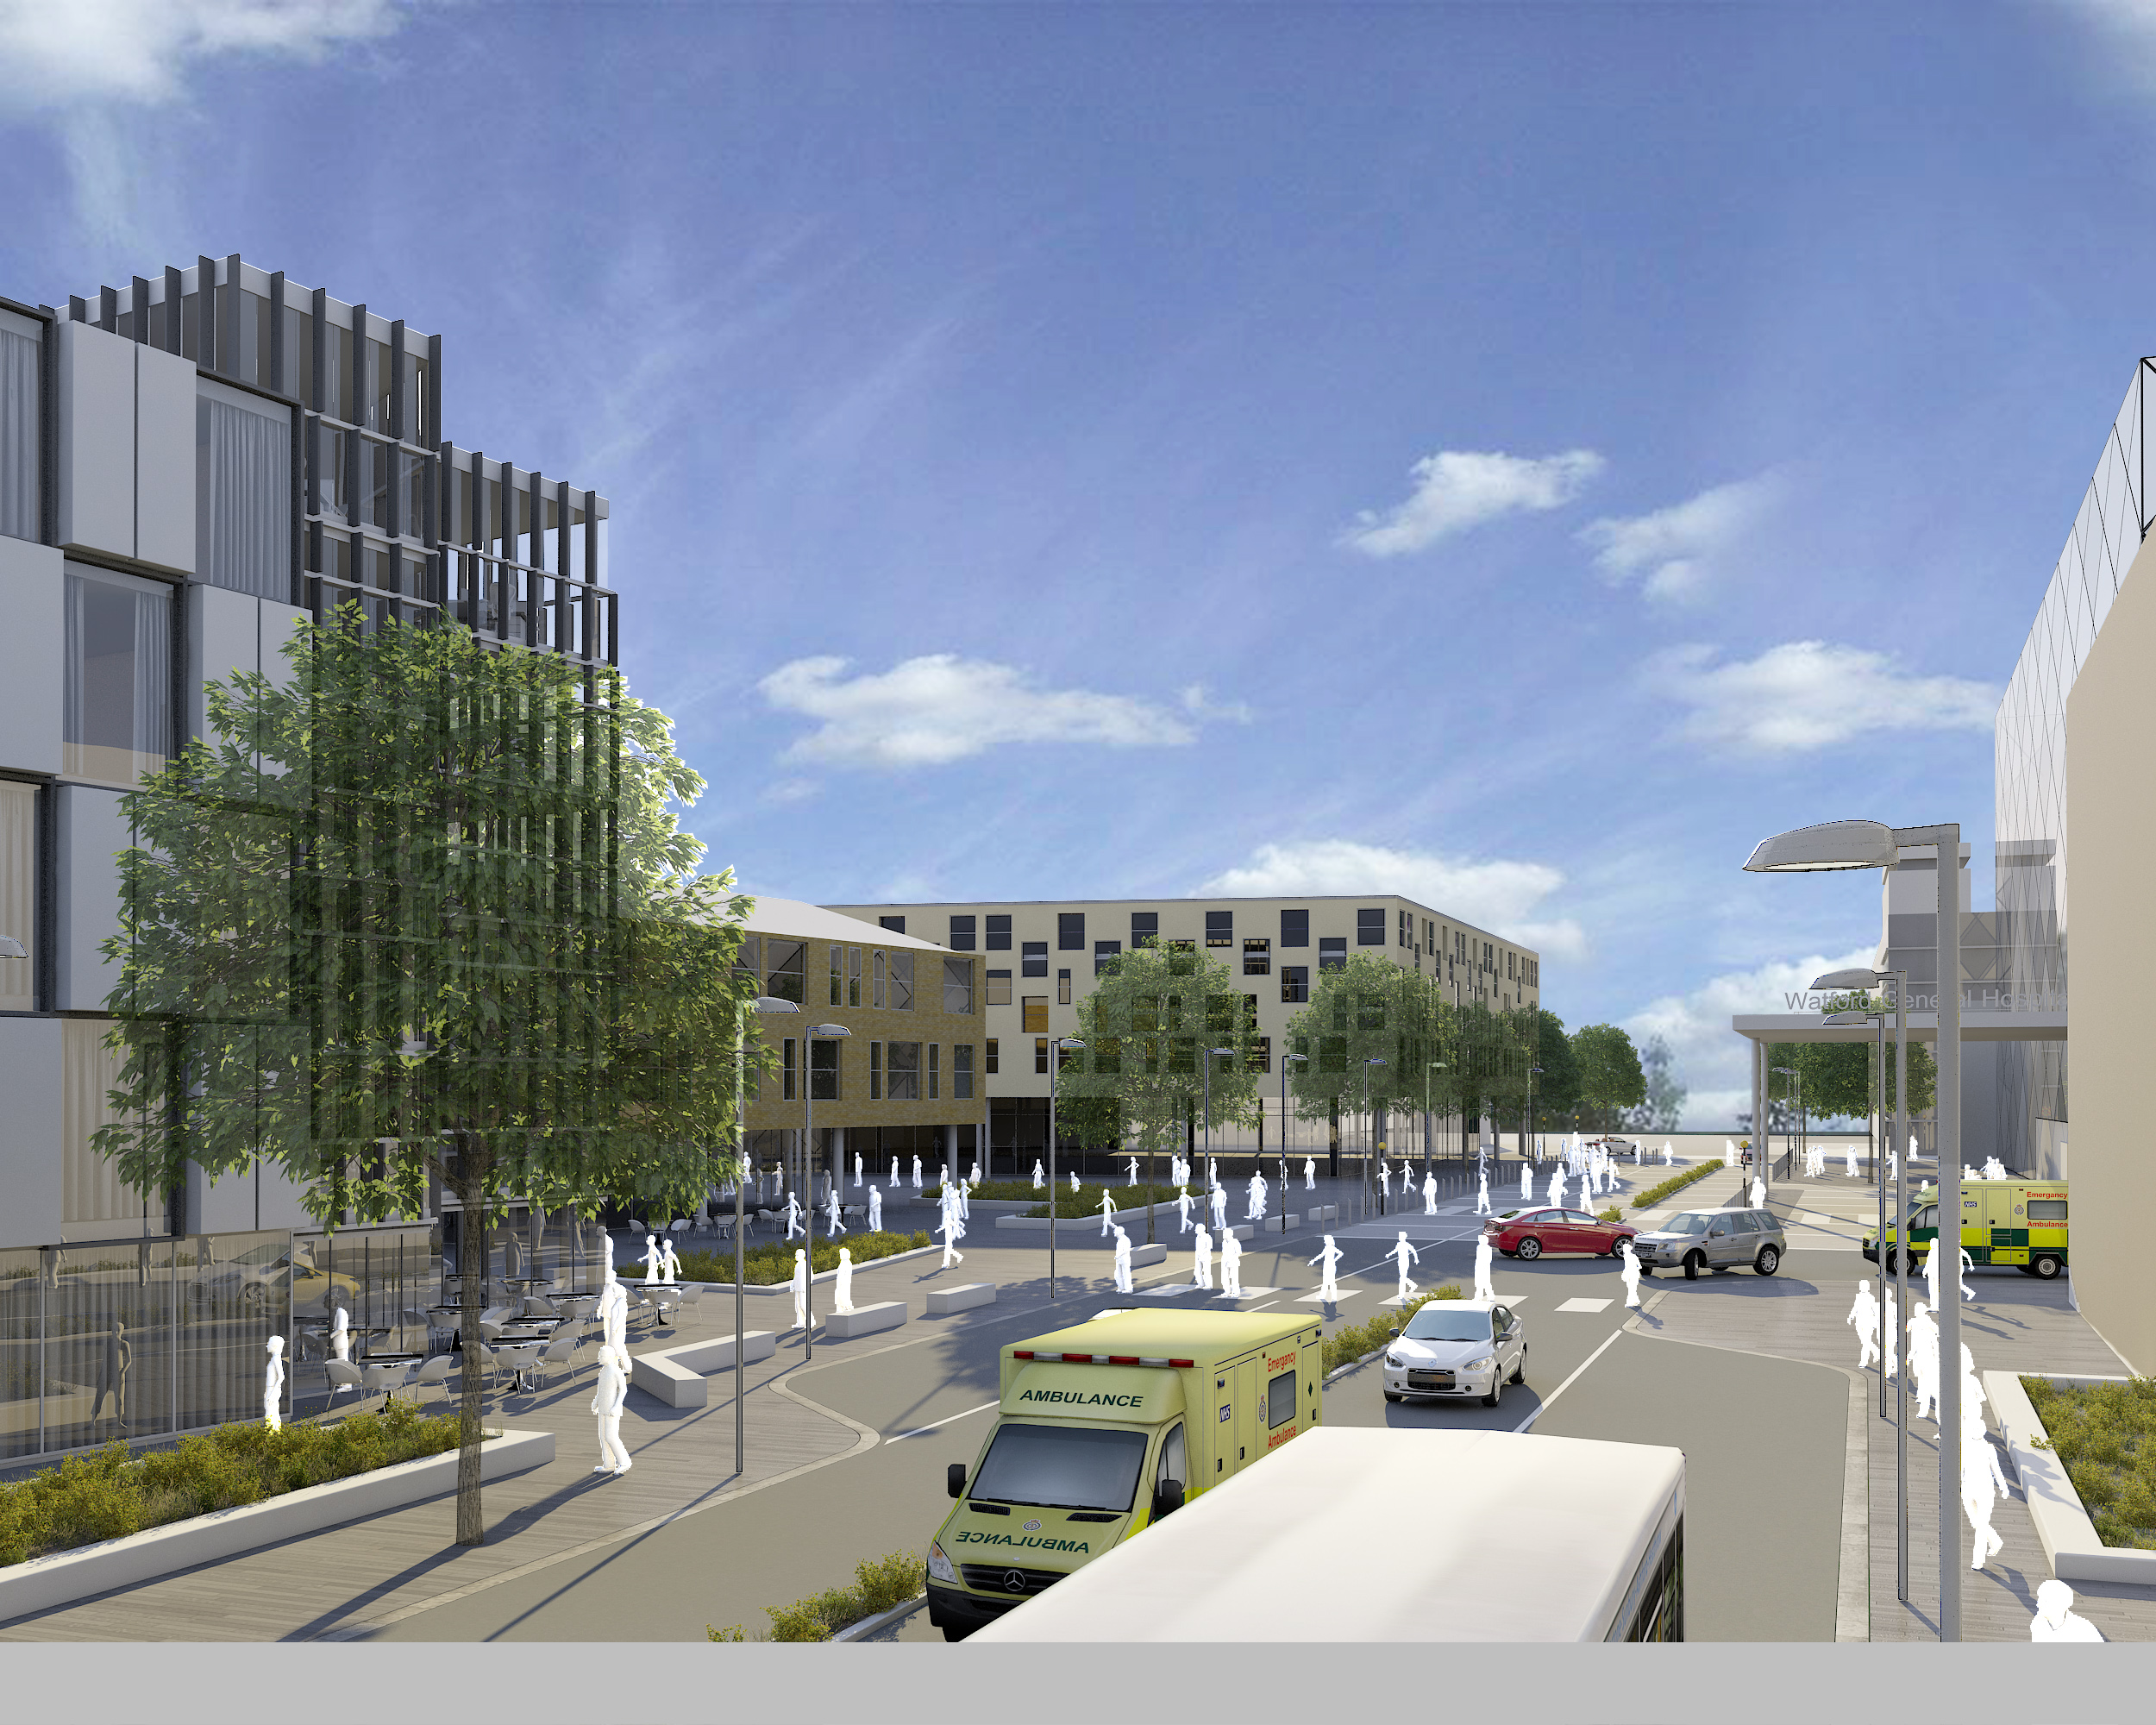 Watford Health Campus gears up following approval of planning application